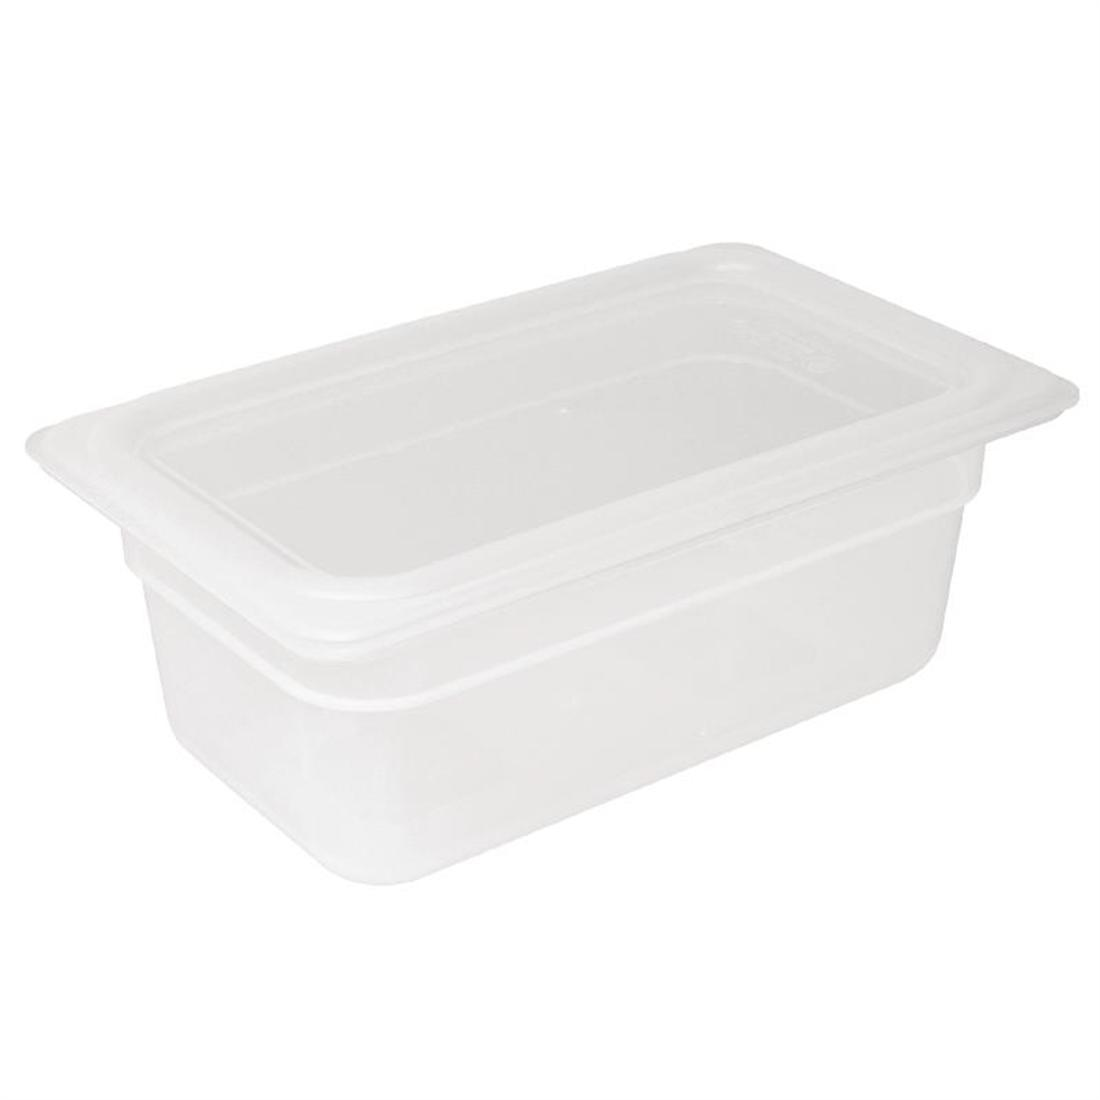 Vogue Polypropylene 1/4 Gastronorm Container with Lid 100mm - Pack of 4 - GJ523